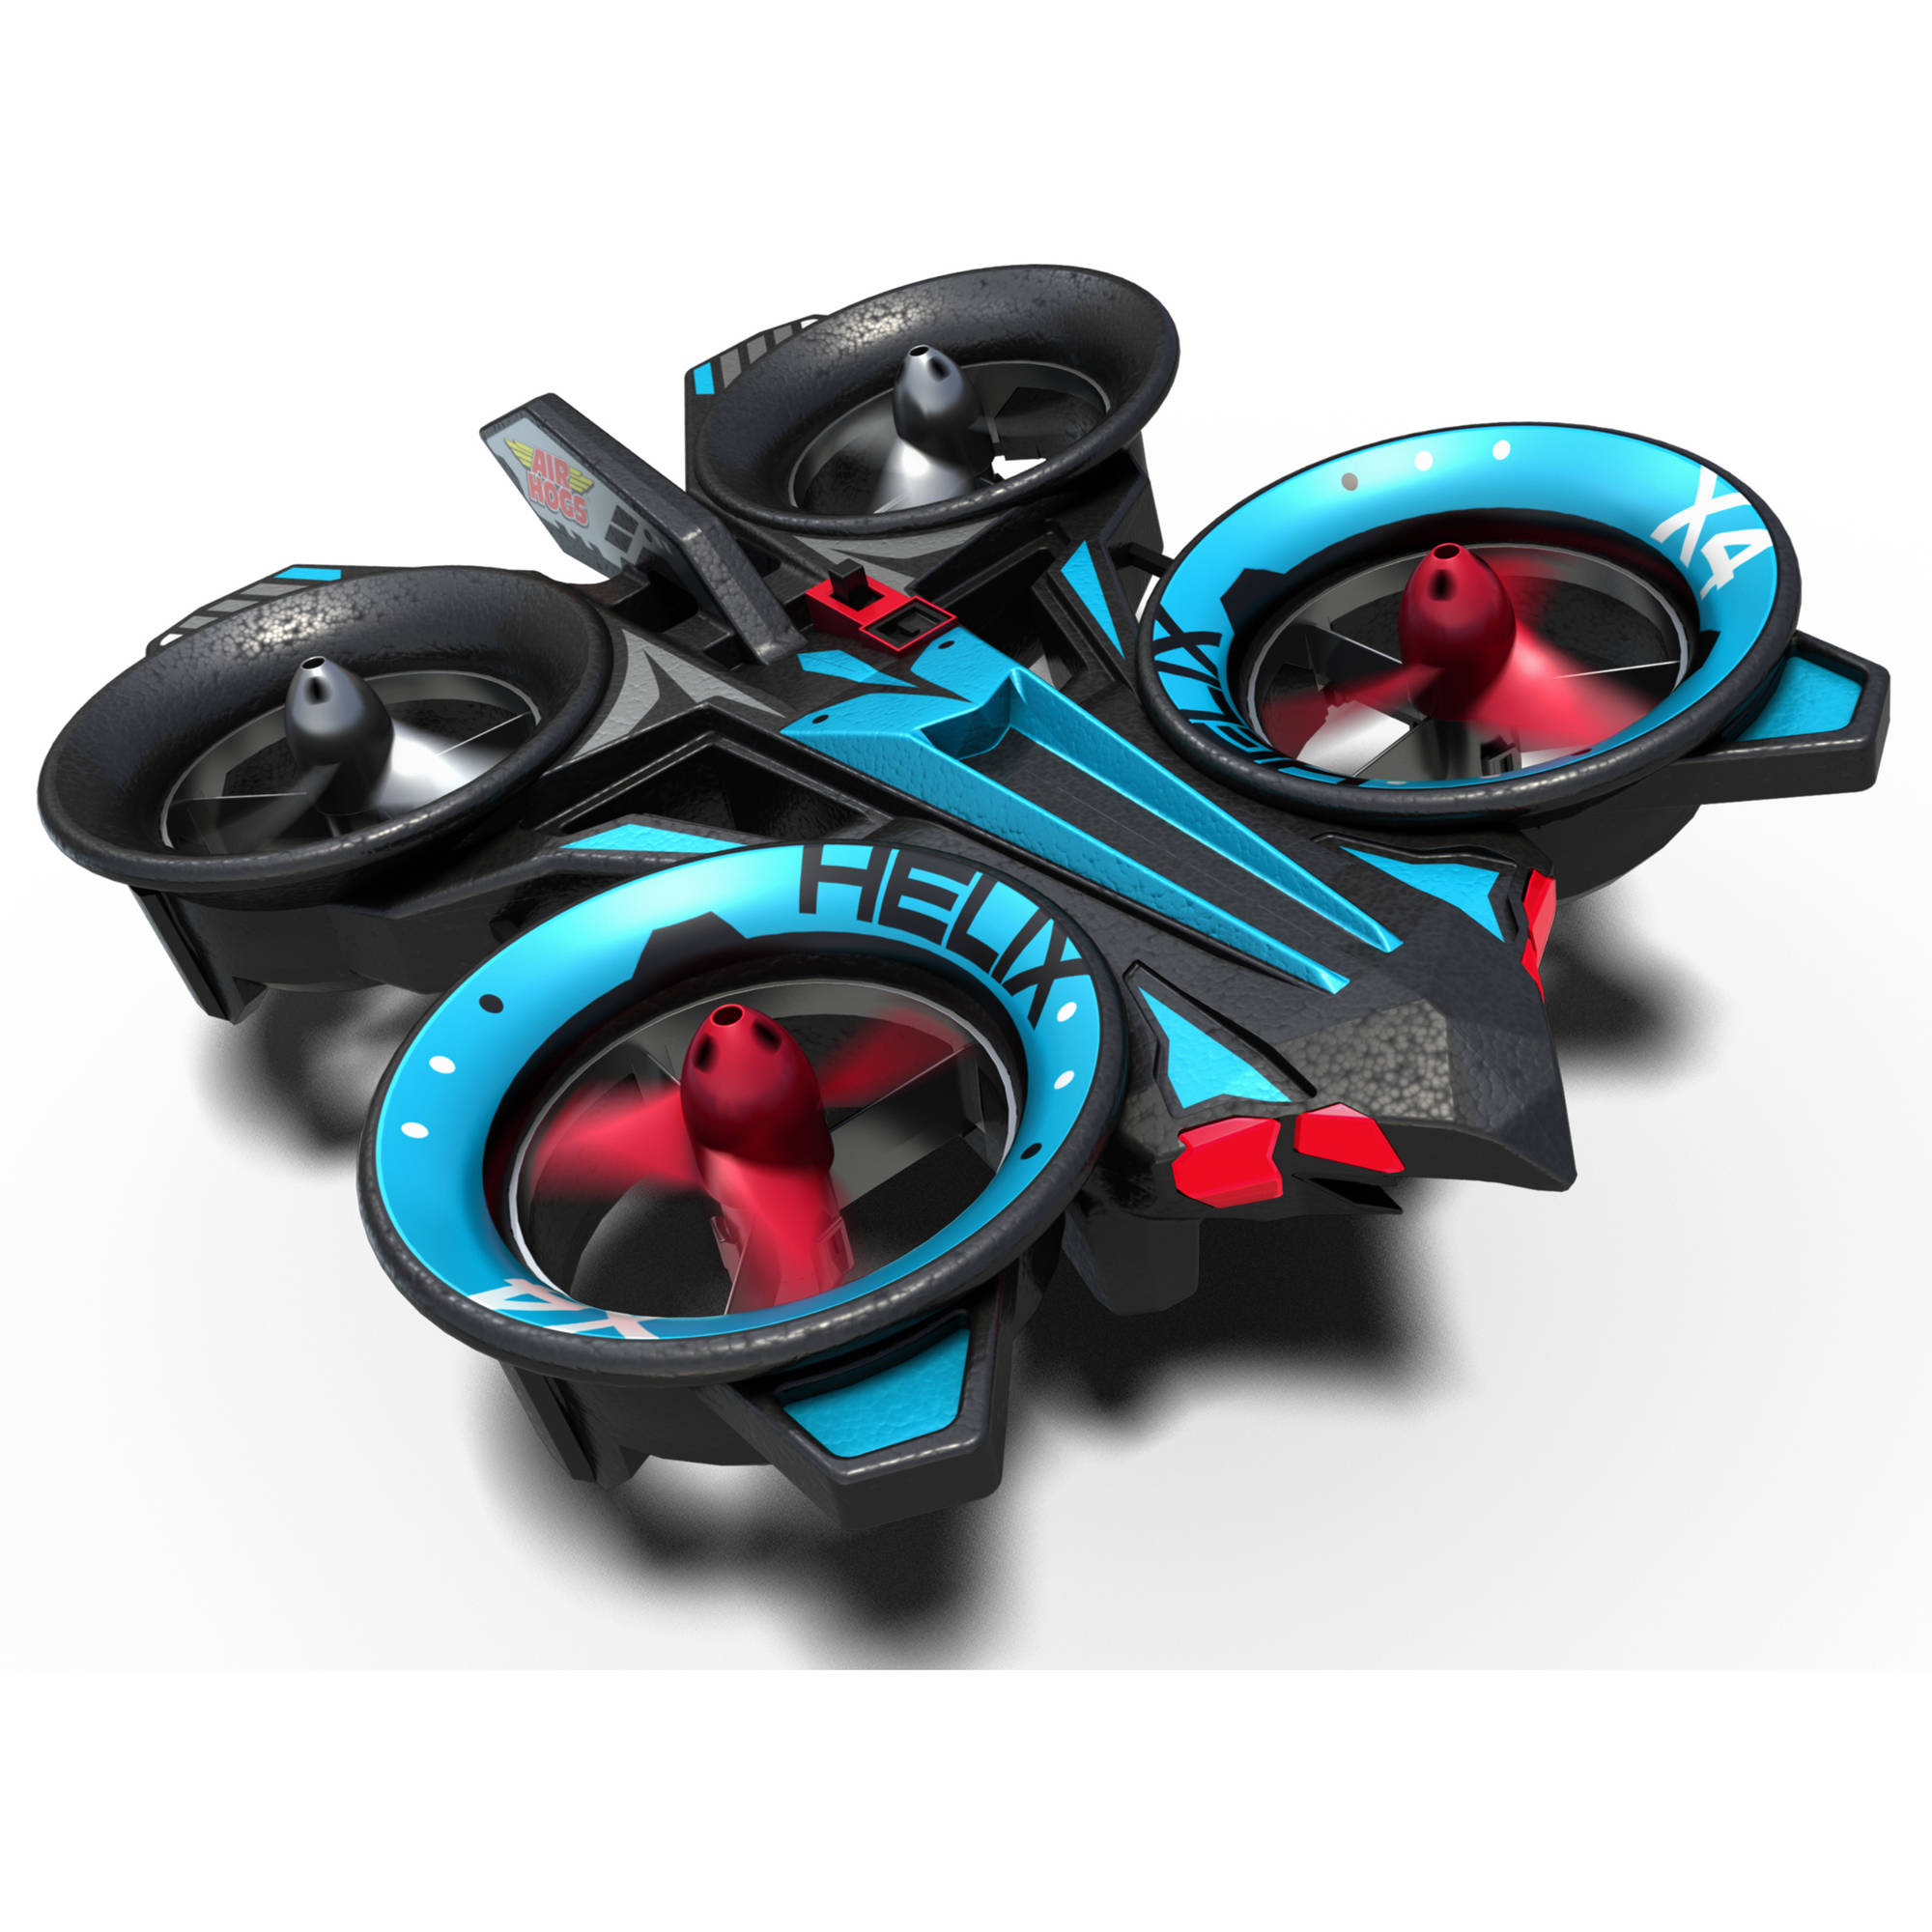 Air Hogs RC Helix X4 Stunt 2.4 GHZ Quad Copter, Blue and Red by